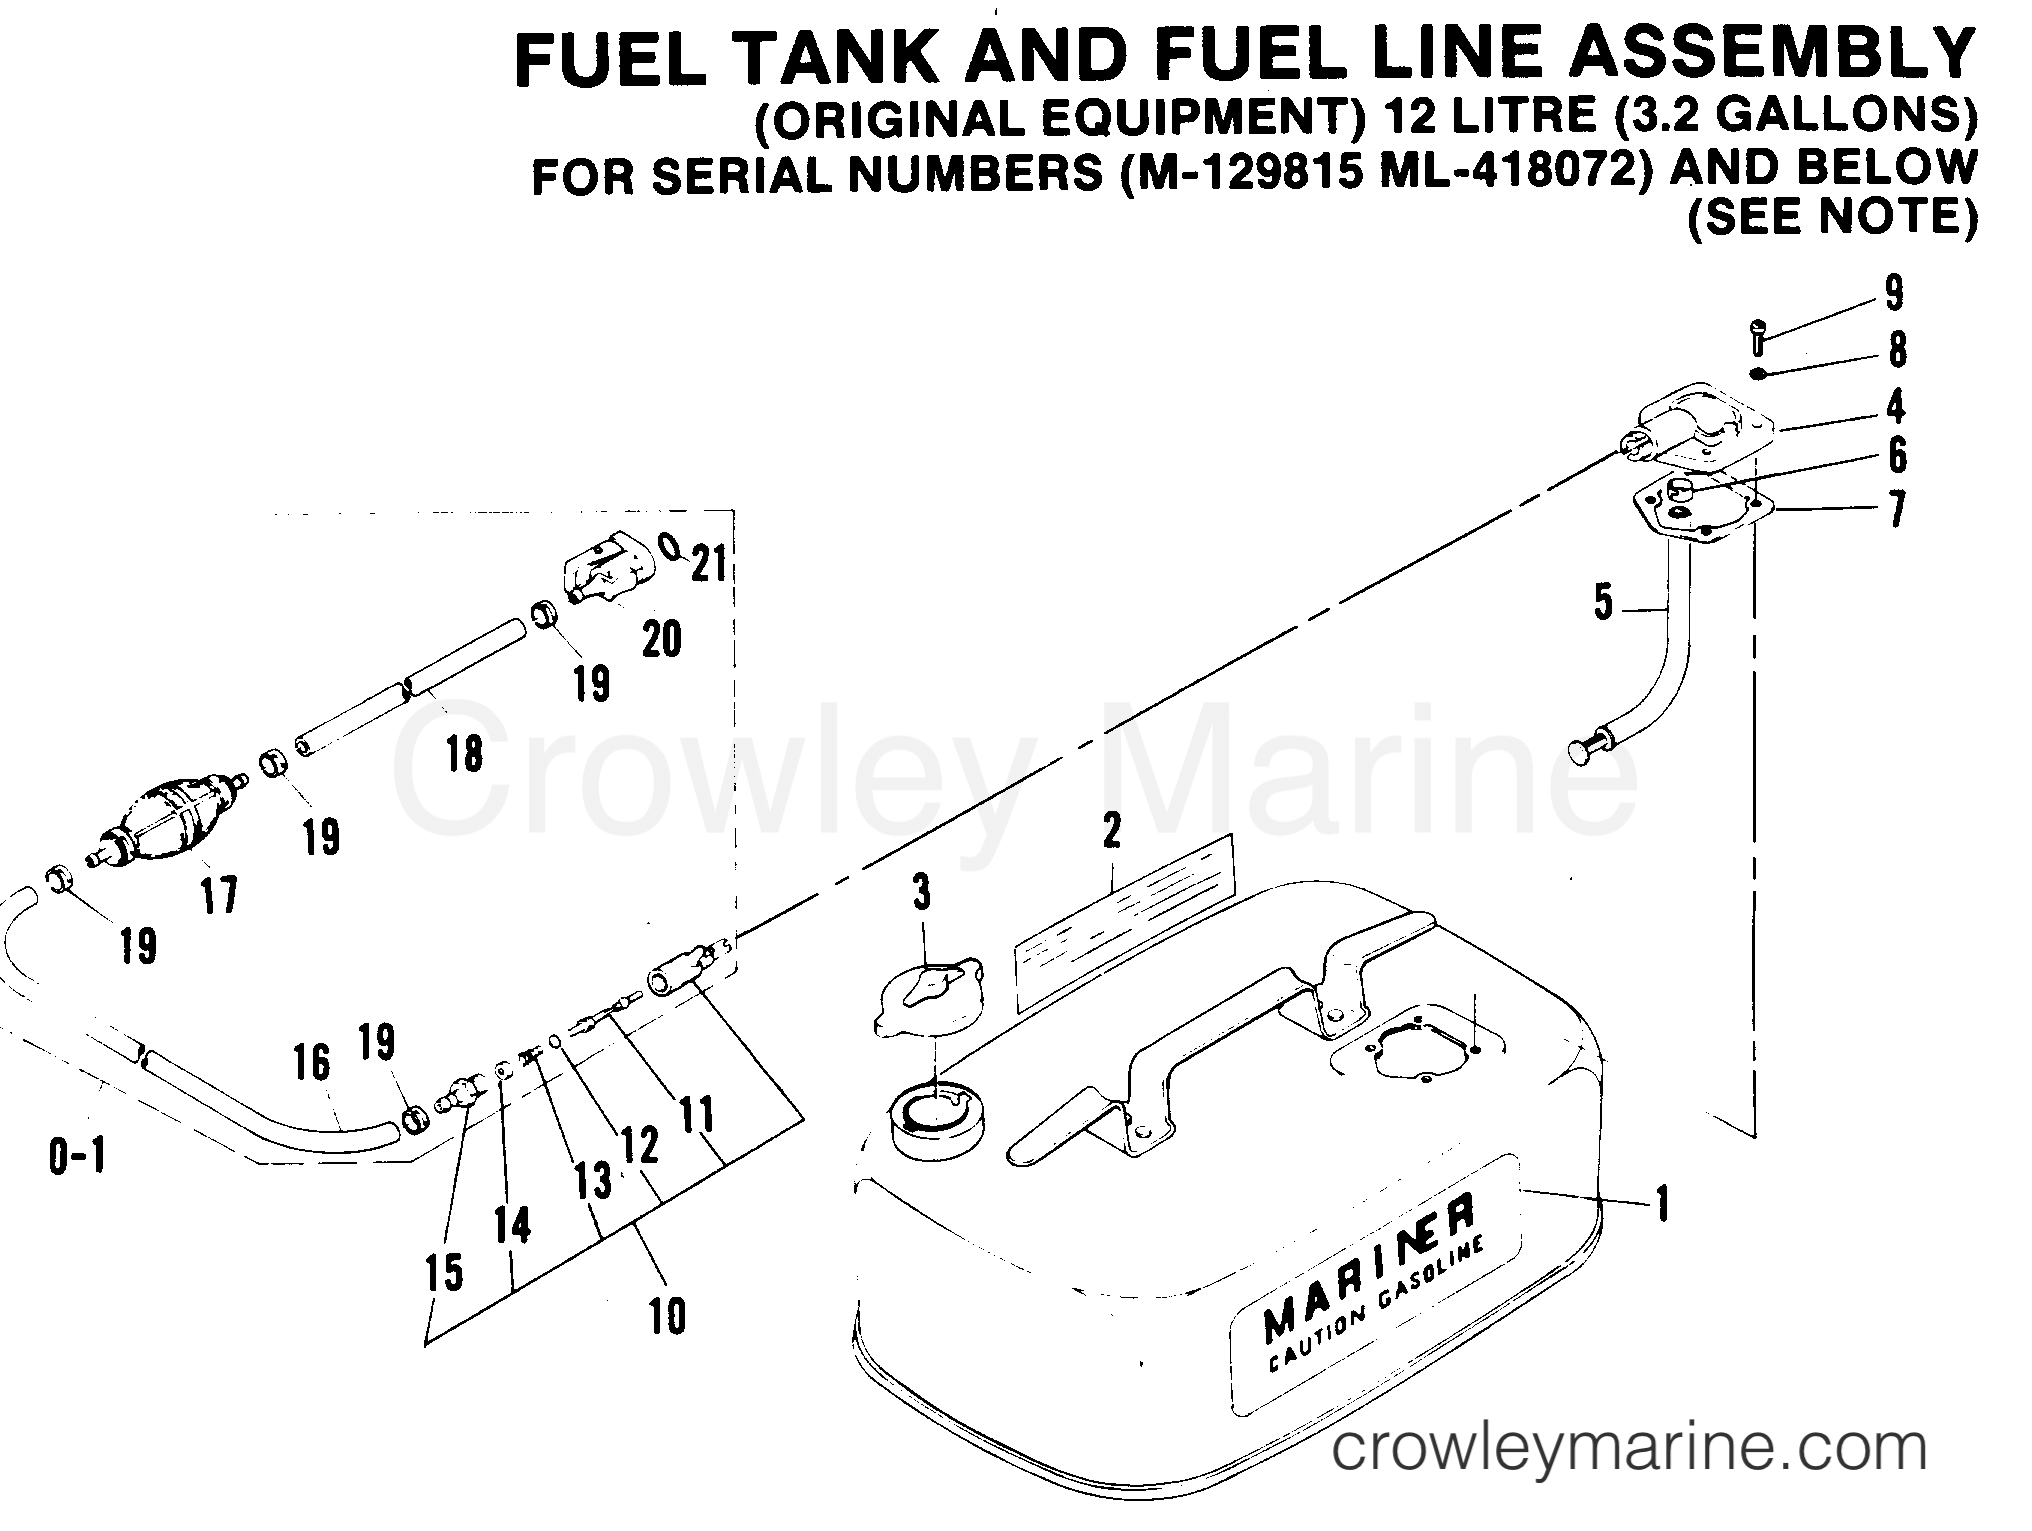 Fuel Tank And Fuel Line Assembly